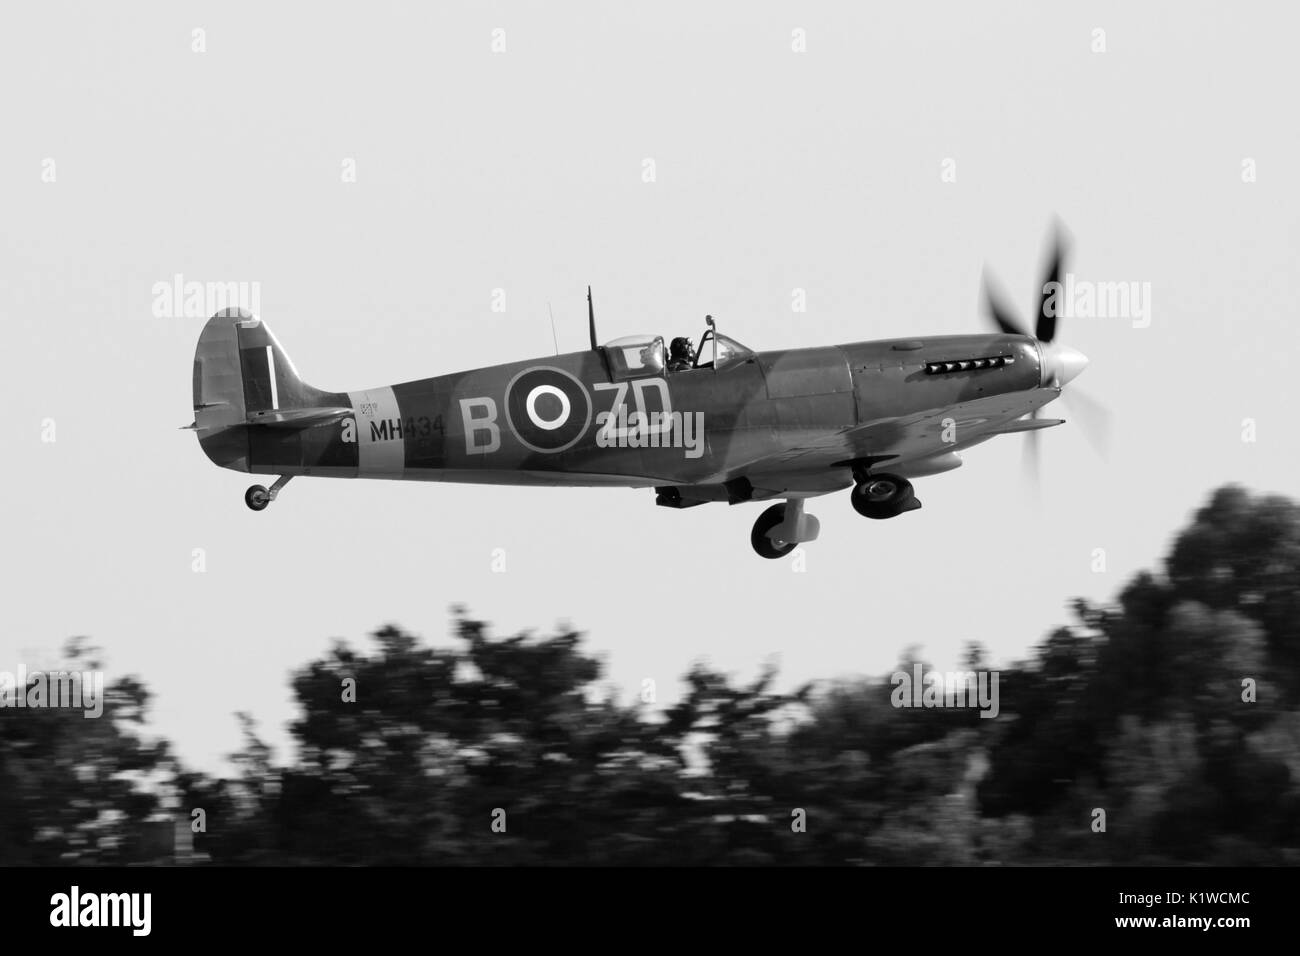 Supermarine Spitfire Mk IX classic British World War 2 fighter plane flying on takeoff for an air display. Side view photo converted to monochrome. - Stock Image